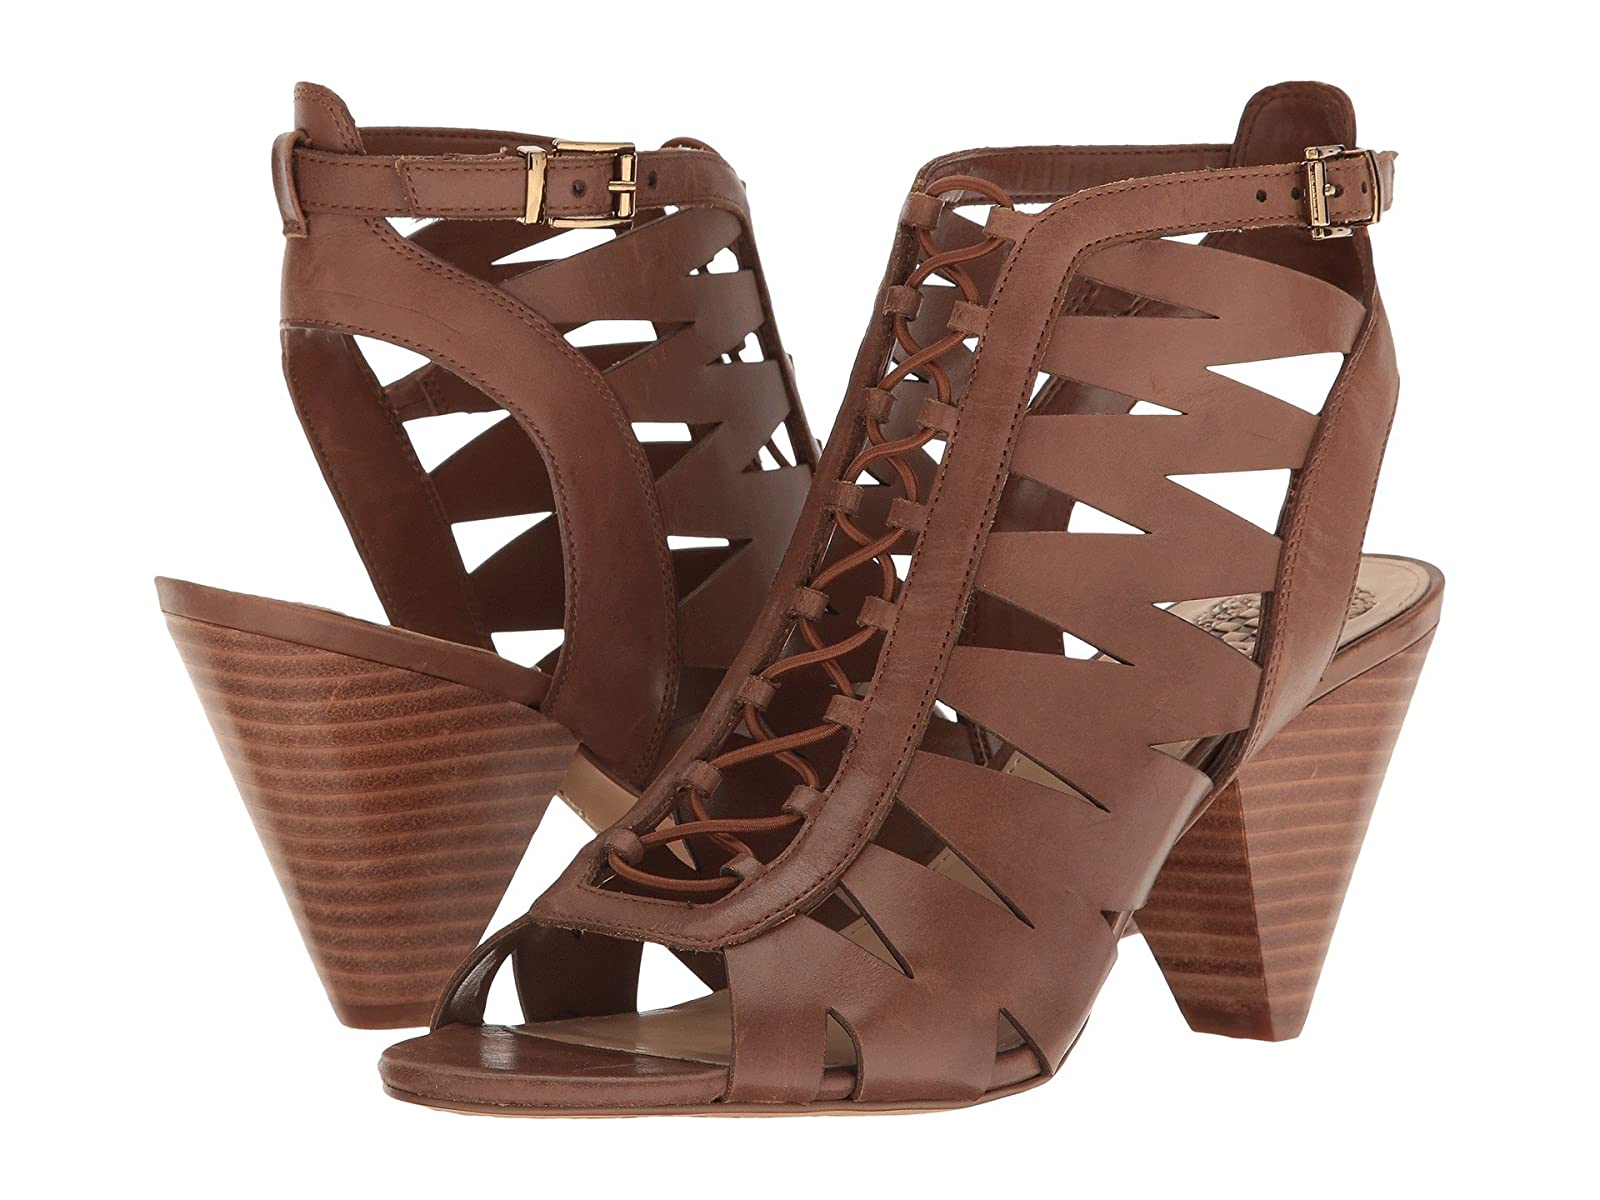 Vince Camuto ElettraCheap and distinctive eye-catching shoes